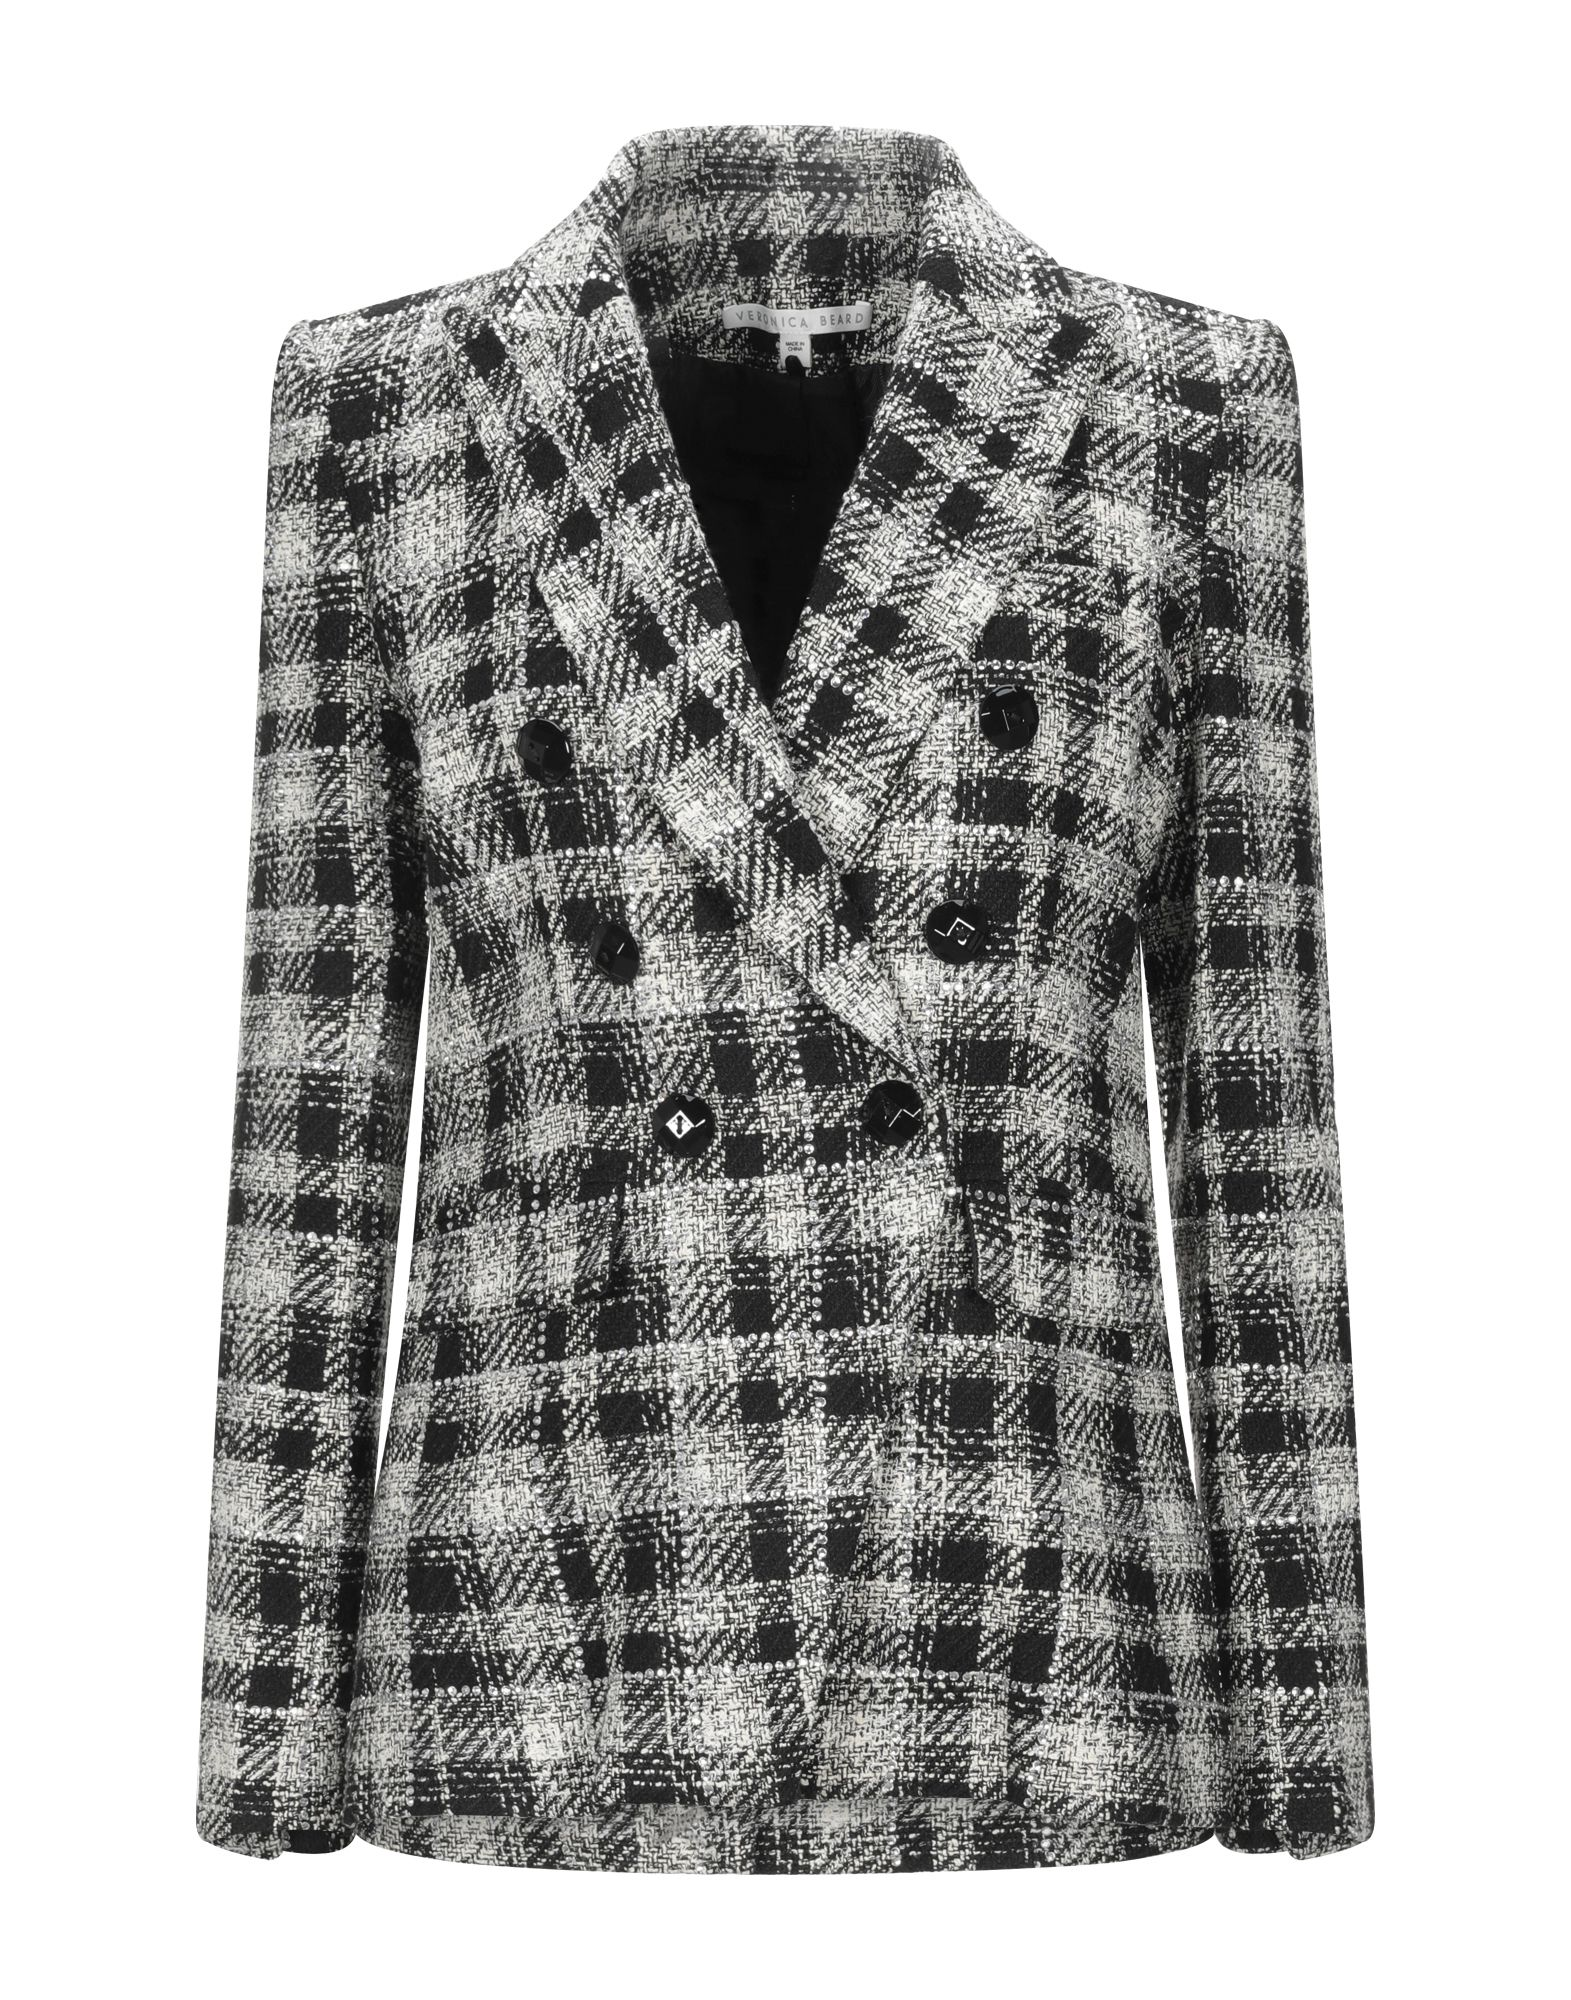 VERONICA BEARD Suit jackets. tweed, rhinestones, tartan plaid, multipockets, single chest pocket, button closing, lapel collar, double-breasted, long sleeves, fully lined. 41% Cotton, 32% Polyester, 17% Acrylic, 9% Viscose, 1% Elastane